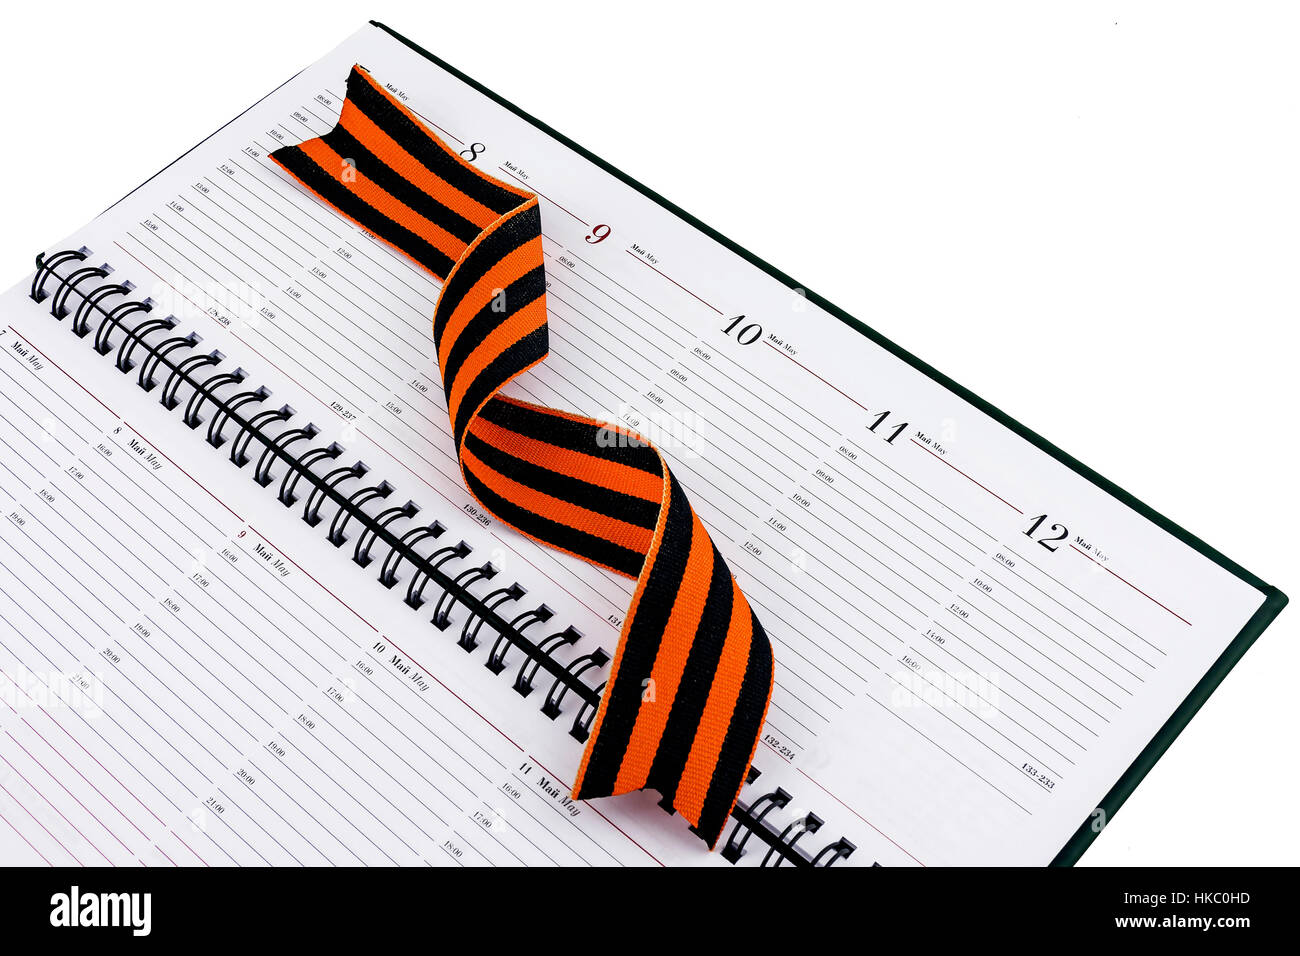 In an open diary sheet is St. George's ribbon twisted spiral - Stock Image